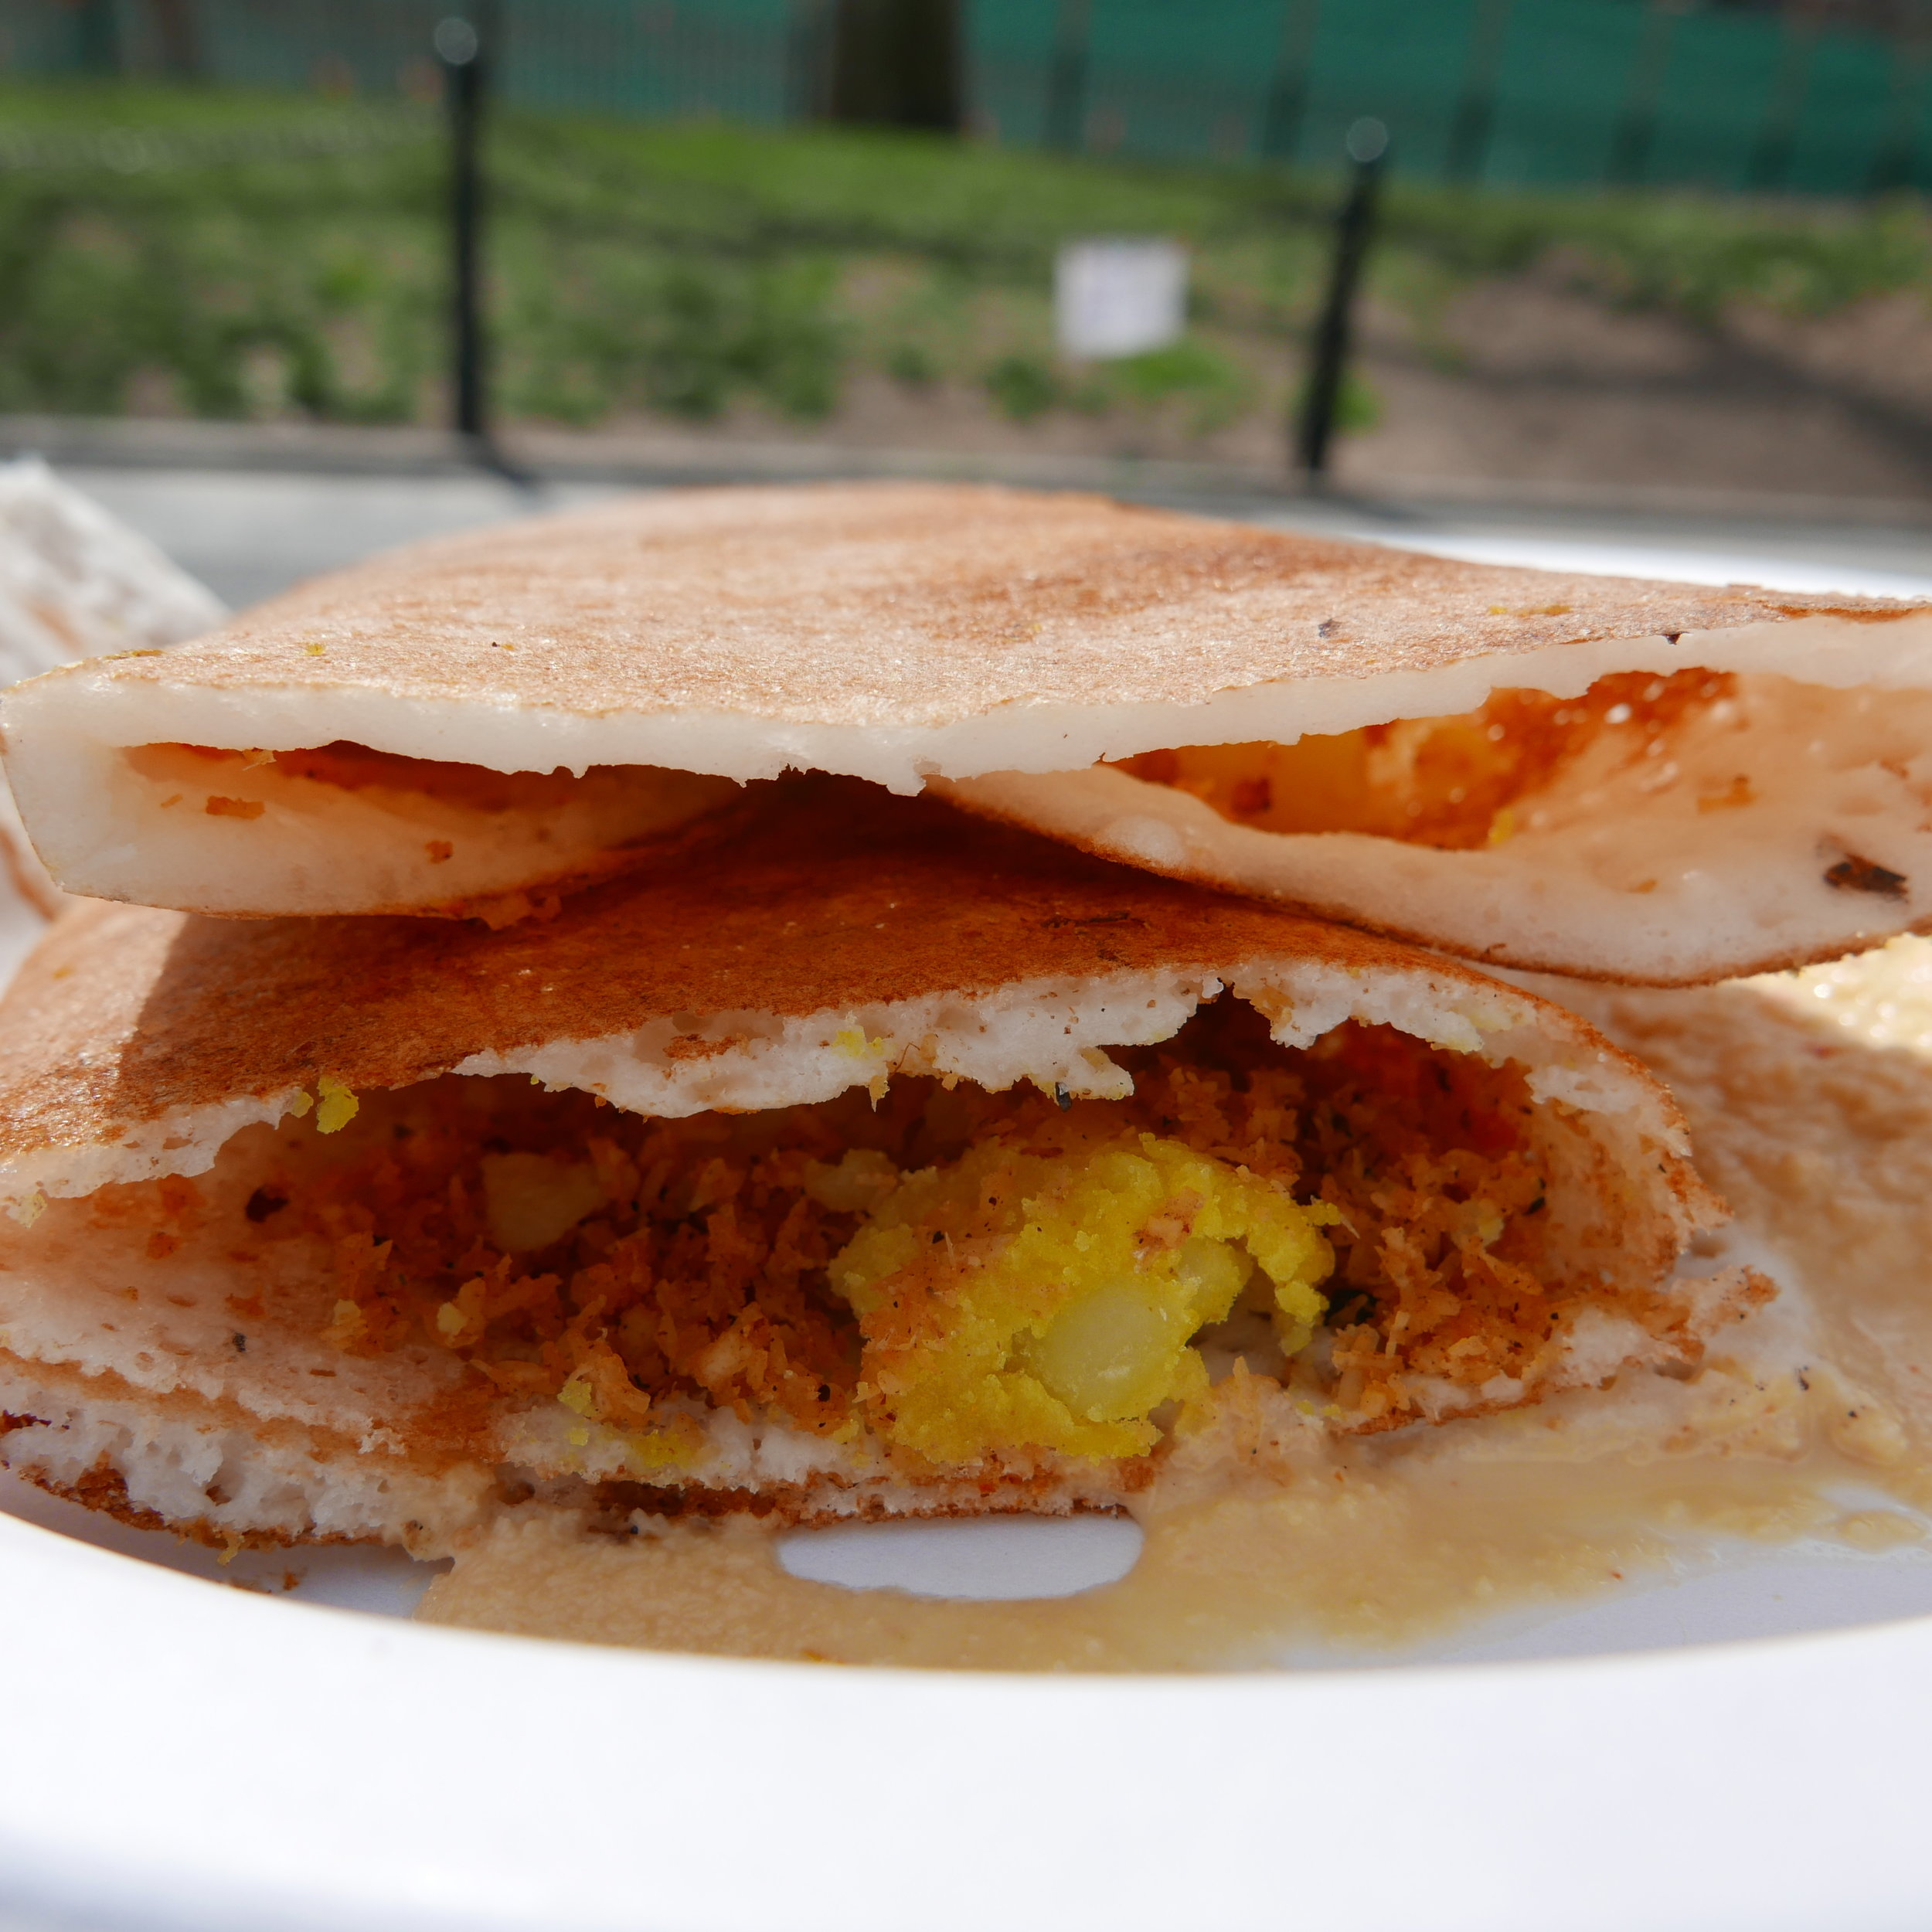 Special Pondicherry crepe made of rice & lentil, filled with veggies and potatoes